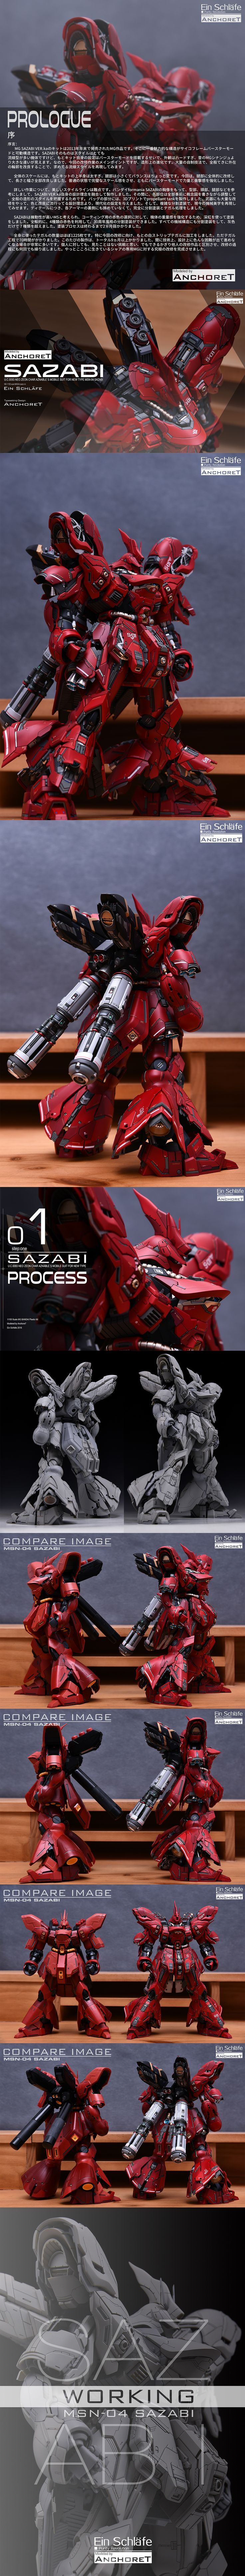 Ein Schlafe Purity Revolution: AMAZING IMPROVED WORK by ANCHORET. MG 1/100 SAZABI CUSTOM. FULL REVIEW a lot of big size images, WIP too! | GUNJAP